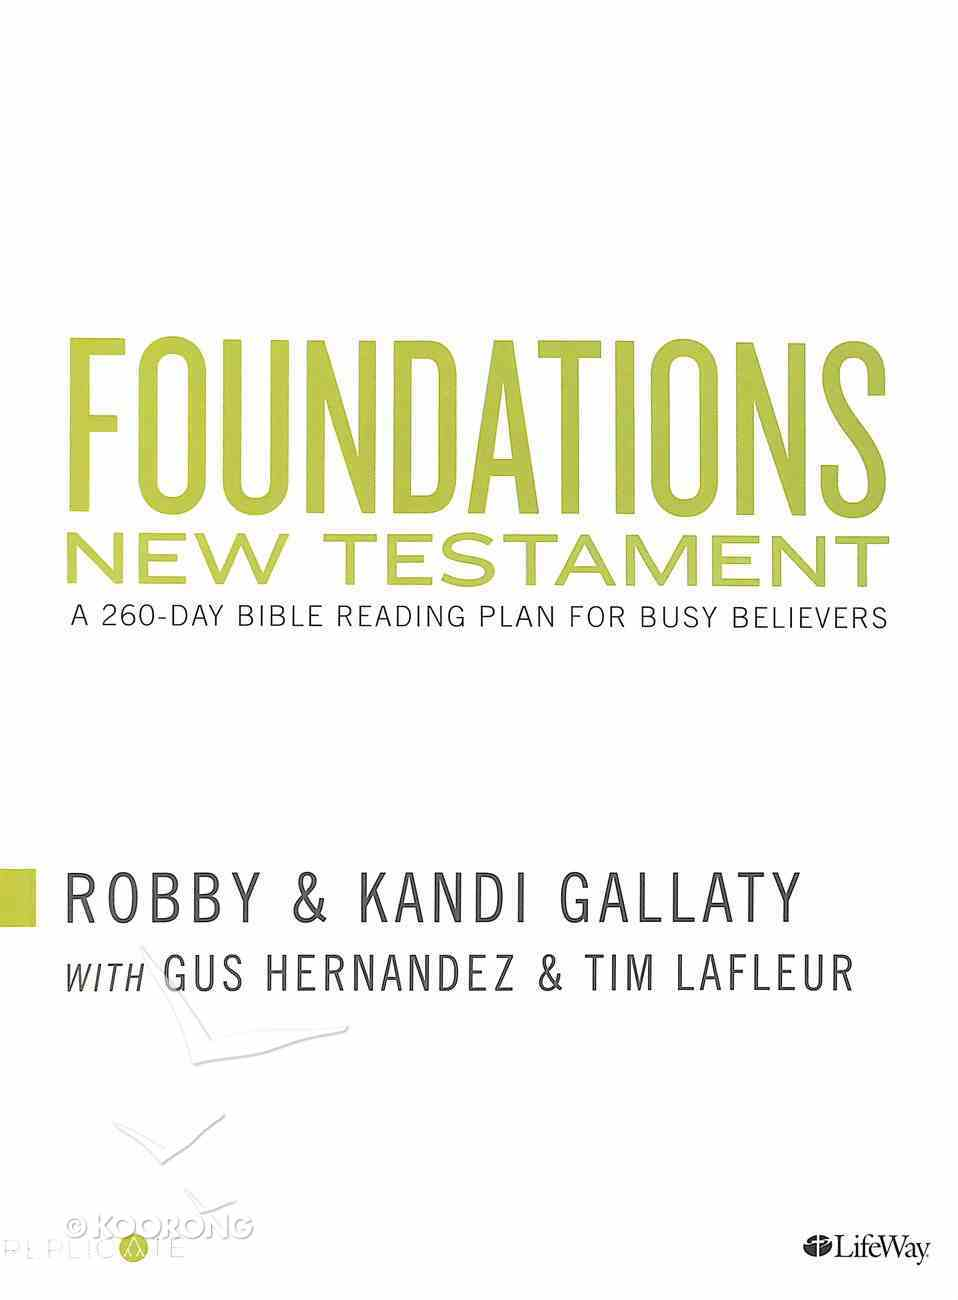 Foundations - New Testament: A 260-Day Bible Reading Plan For Busy Believers Paperback